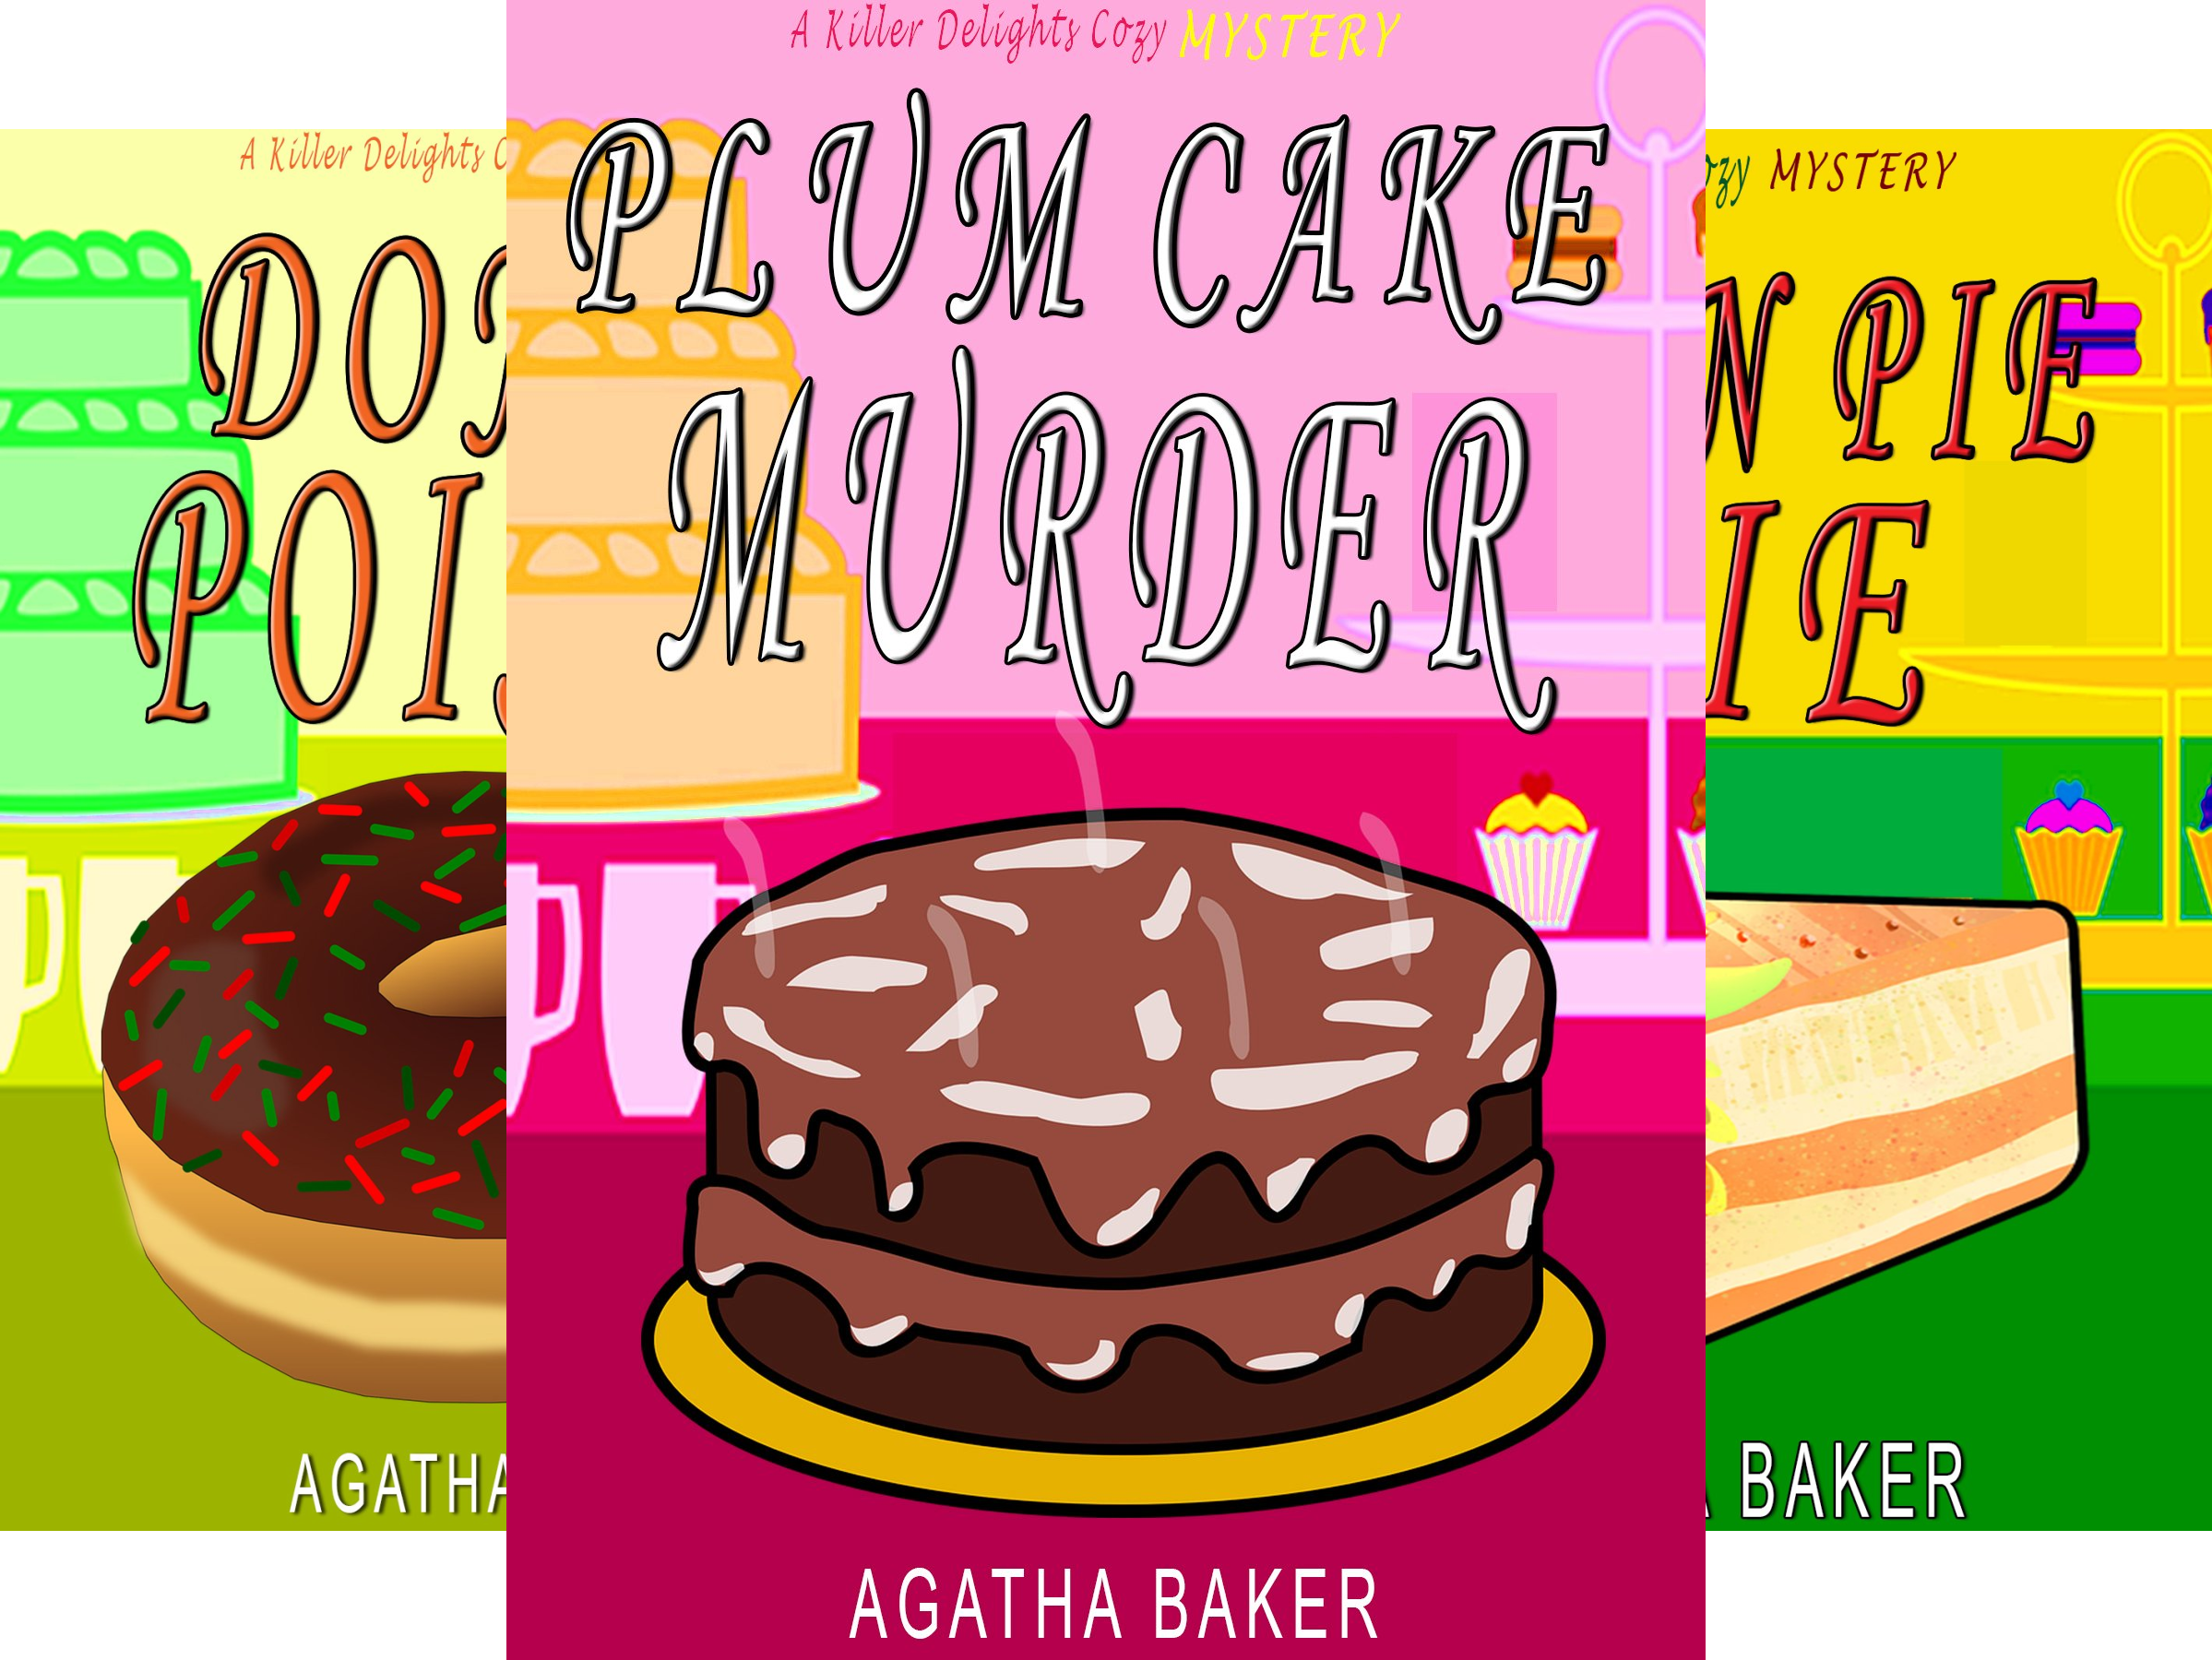 killer-delights-cozy-mystery-3-book-series